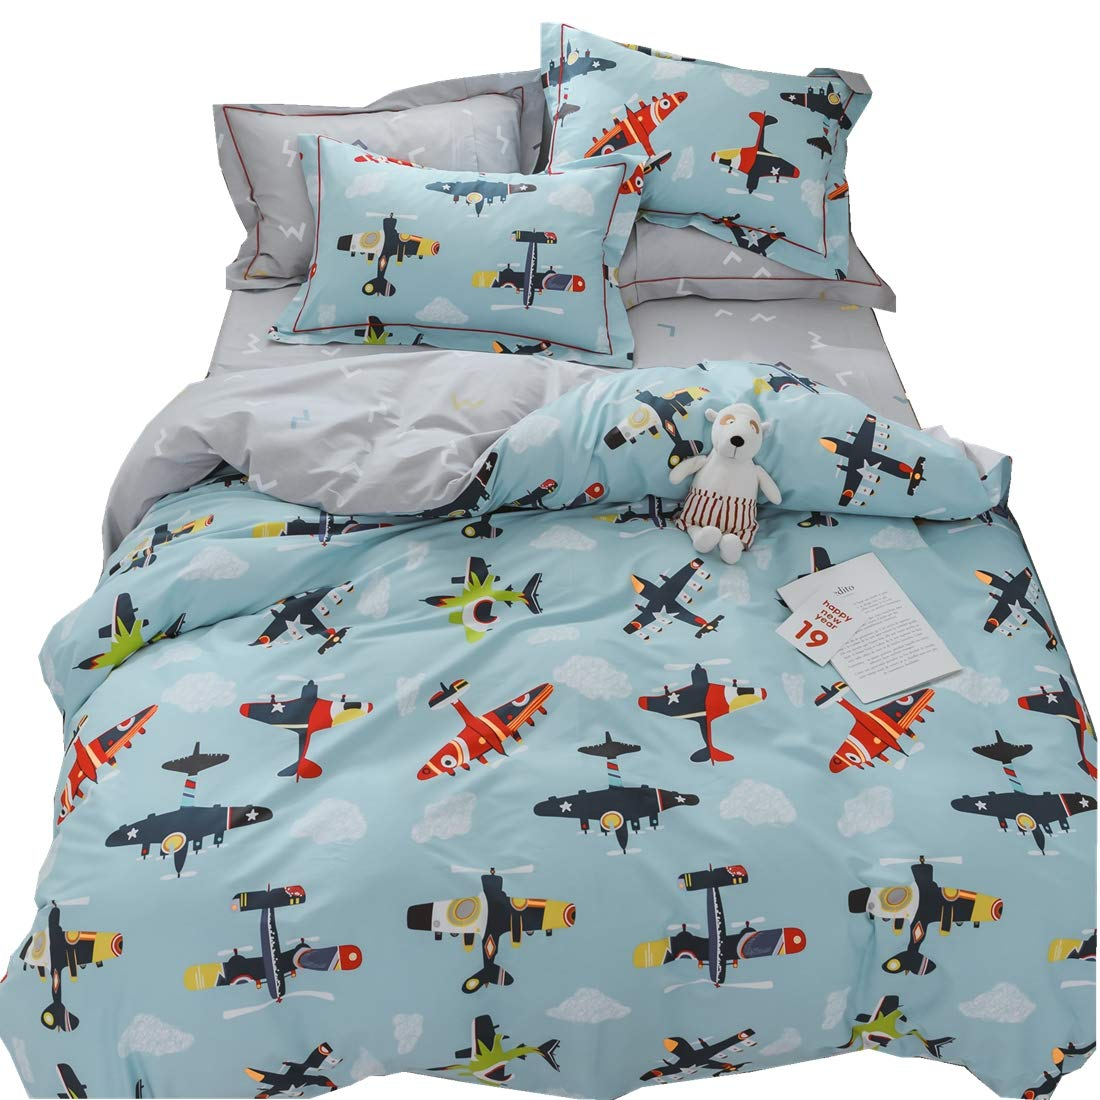 LAYENJOY Airplane Cartoon Duvet Cover Set Twin Size Aircraft Flying Sky Clouds 100% Cotton Bedding Set for Kids Teens Boys Girls Reversible Blue Gray Comforter Cover, No Comforter